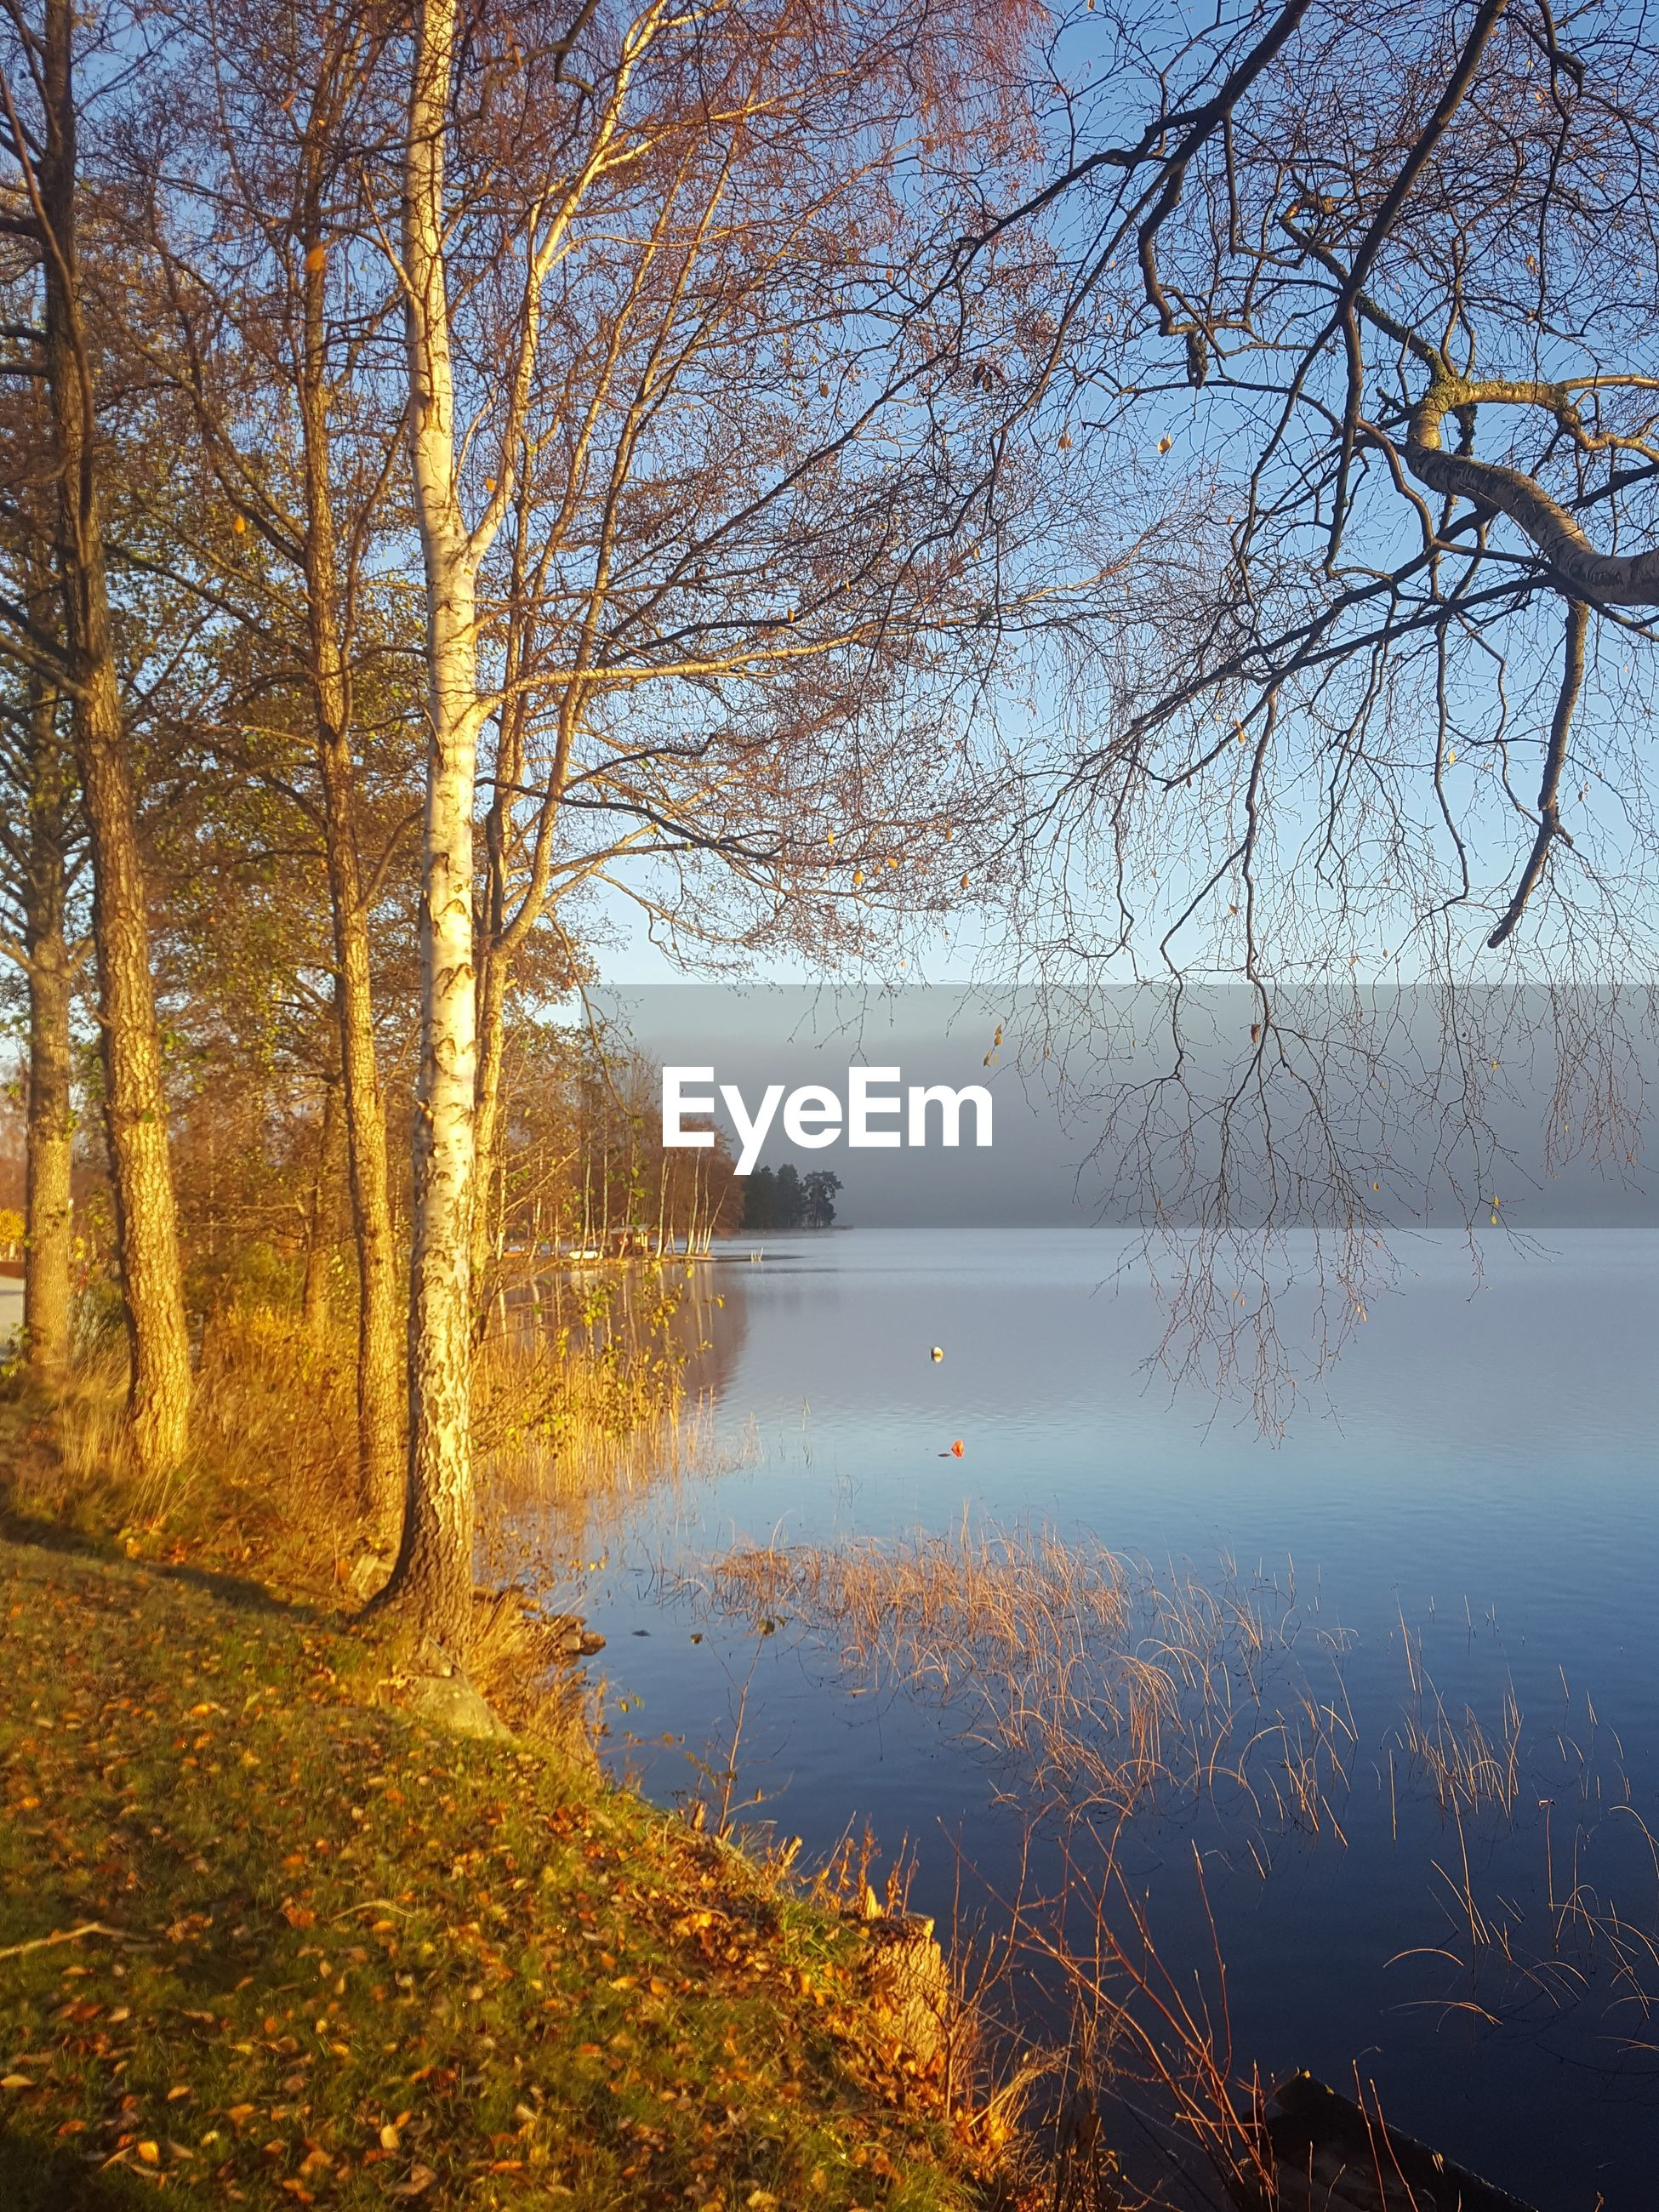 SCENIC VIEW OF LAKE AGAINST TREES DURING AUTUMN